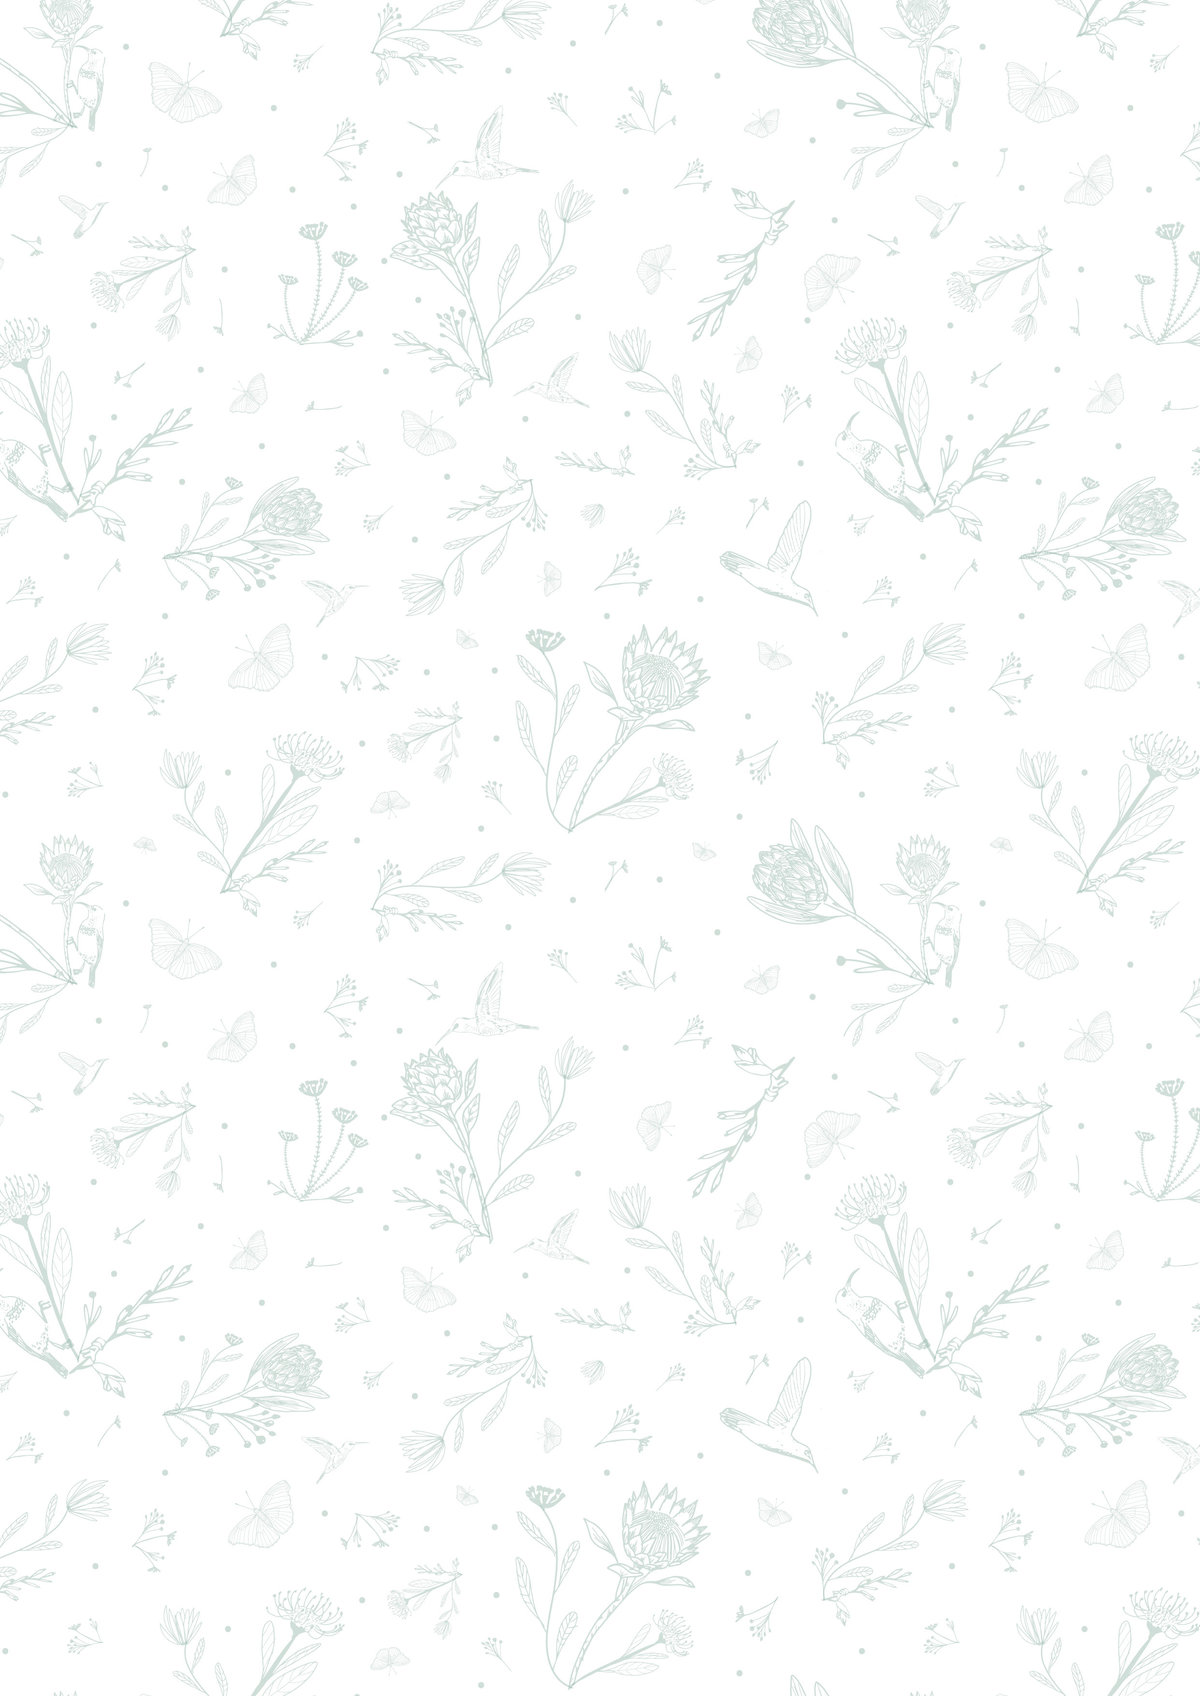 Fynbos-Pattern-Teal-REPEAT-06